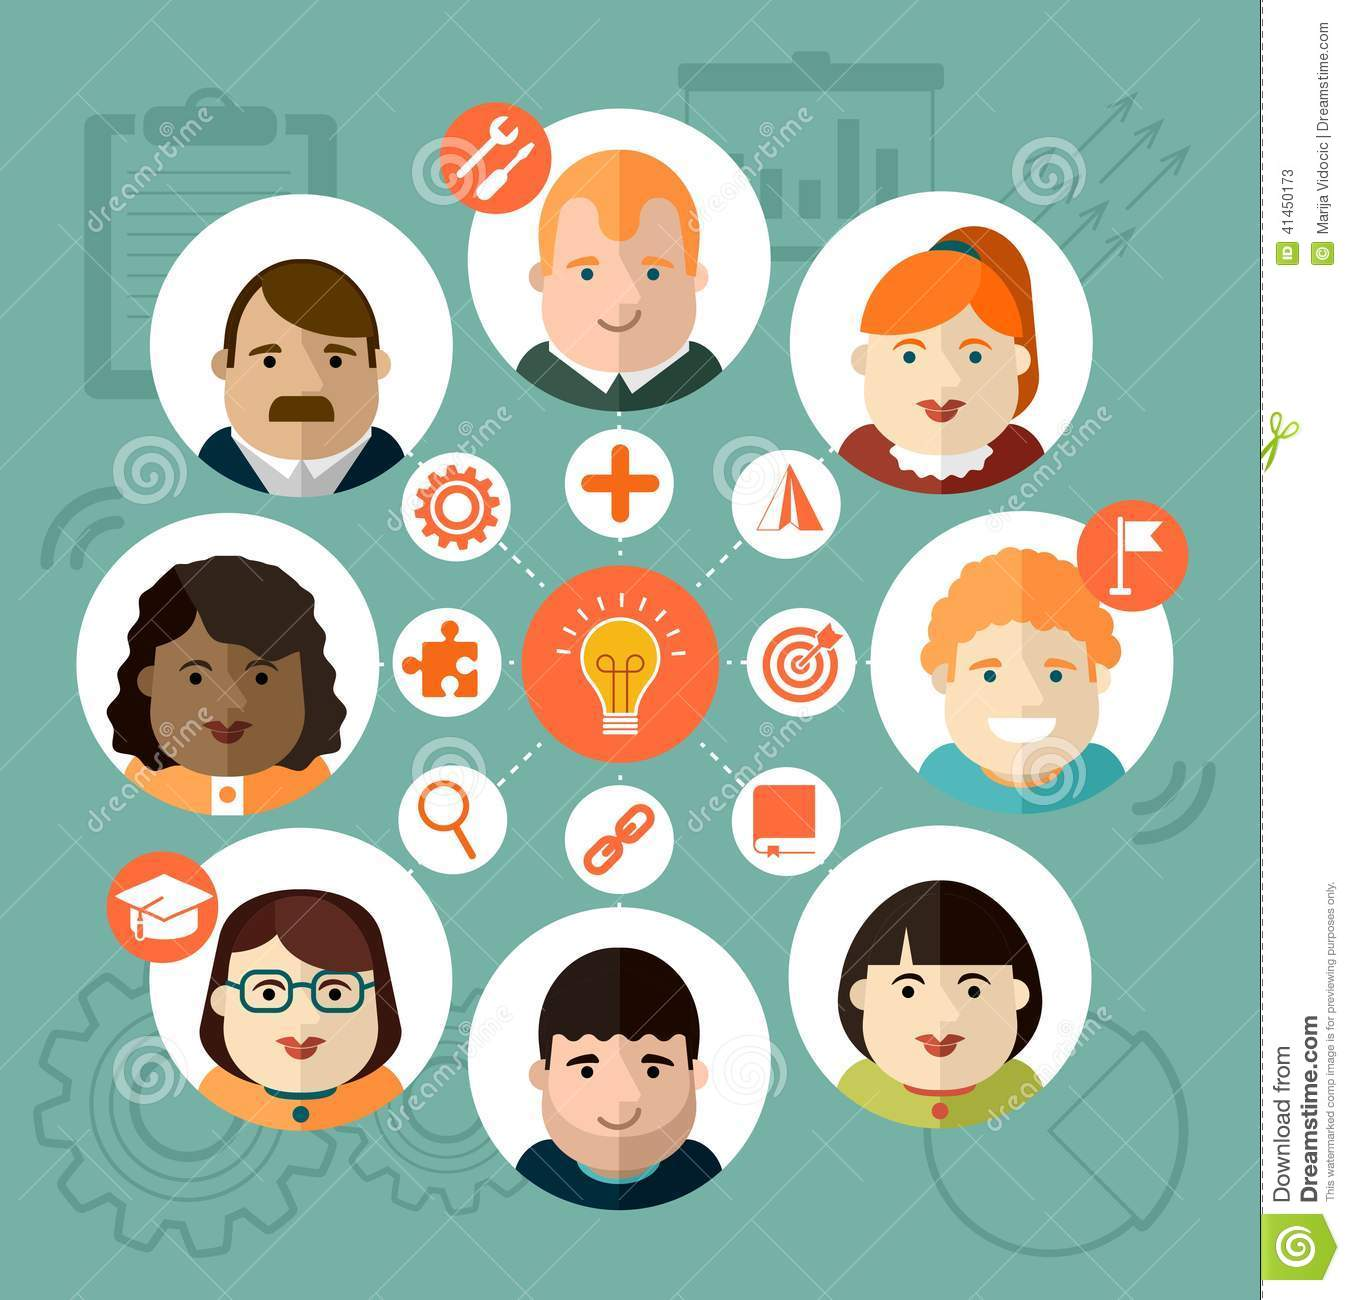 individual diff and diversity Wellner (2000) conceptualized diversity as representing a multitude of individual differences and similarities that exist among people diversity can encompass many different human characteristics.